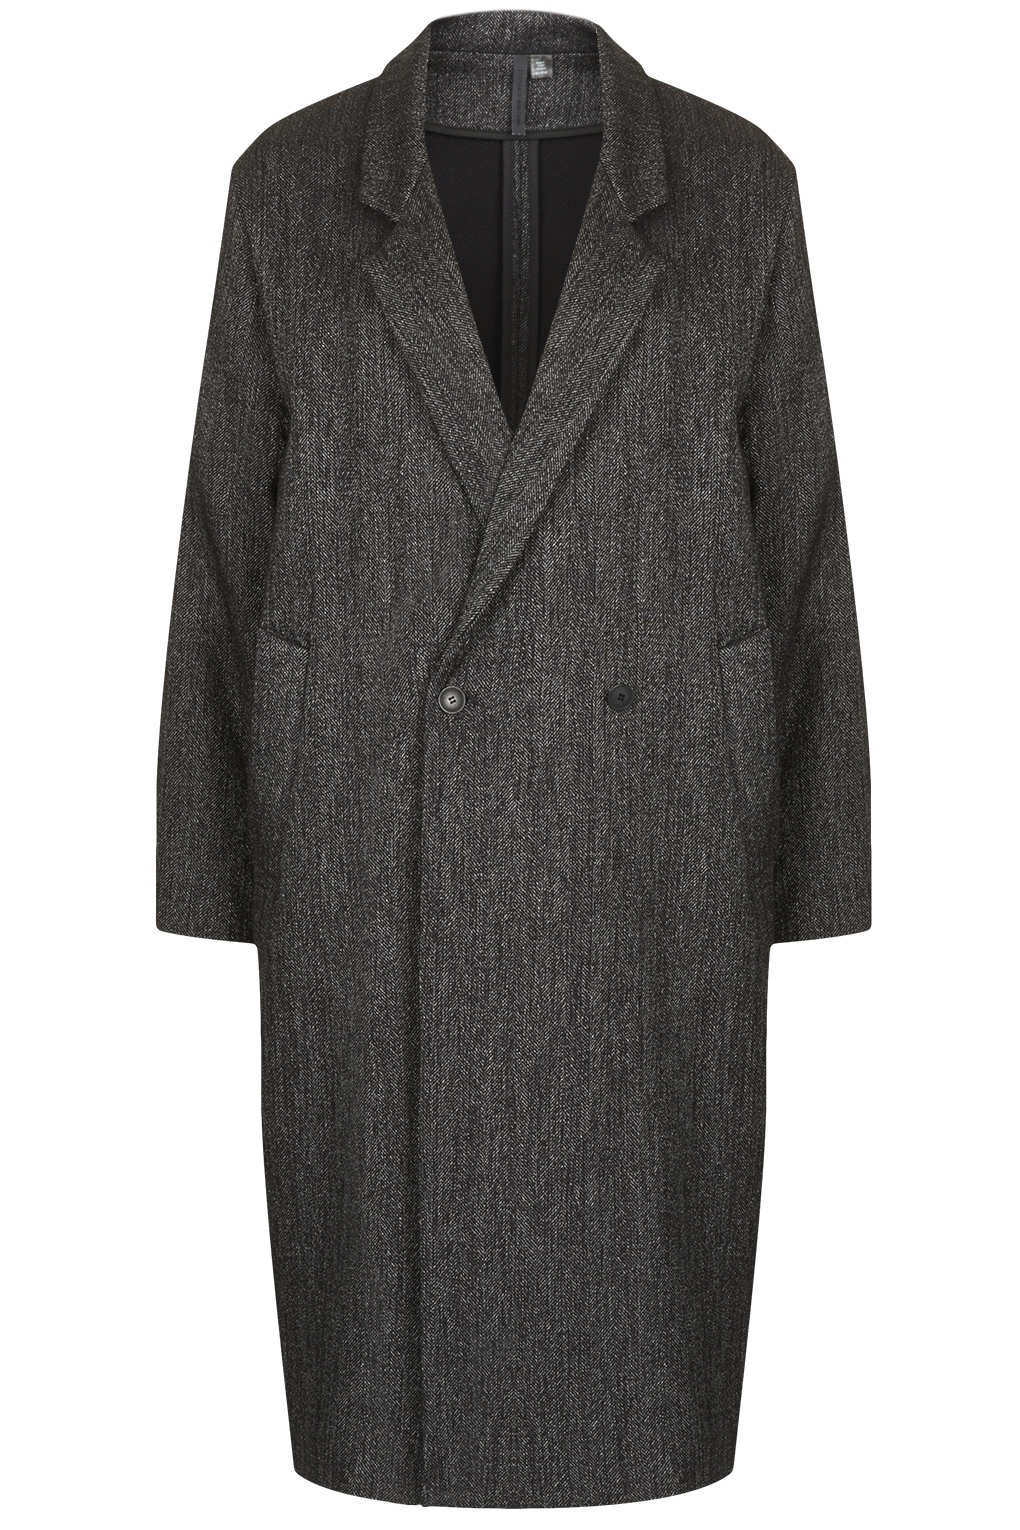 Charcola-tweed-long-max-Unique-£180